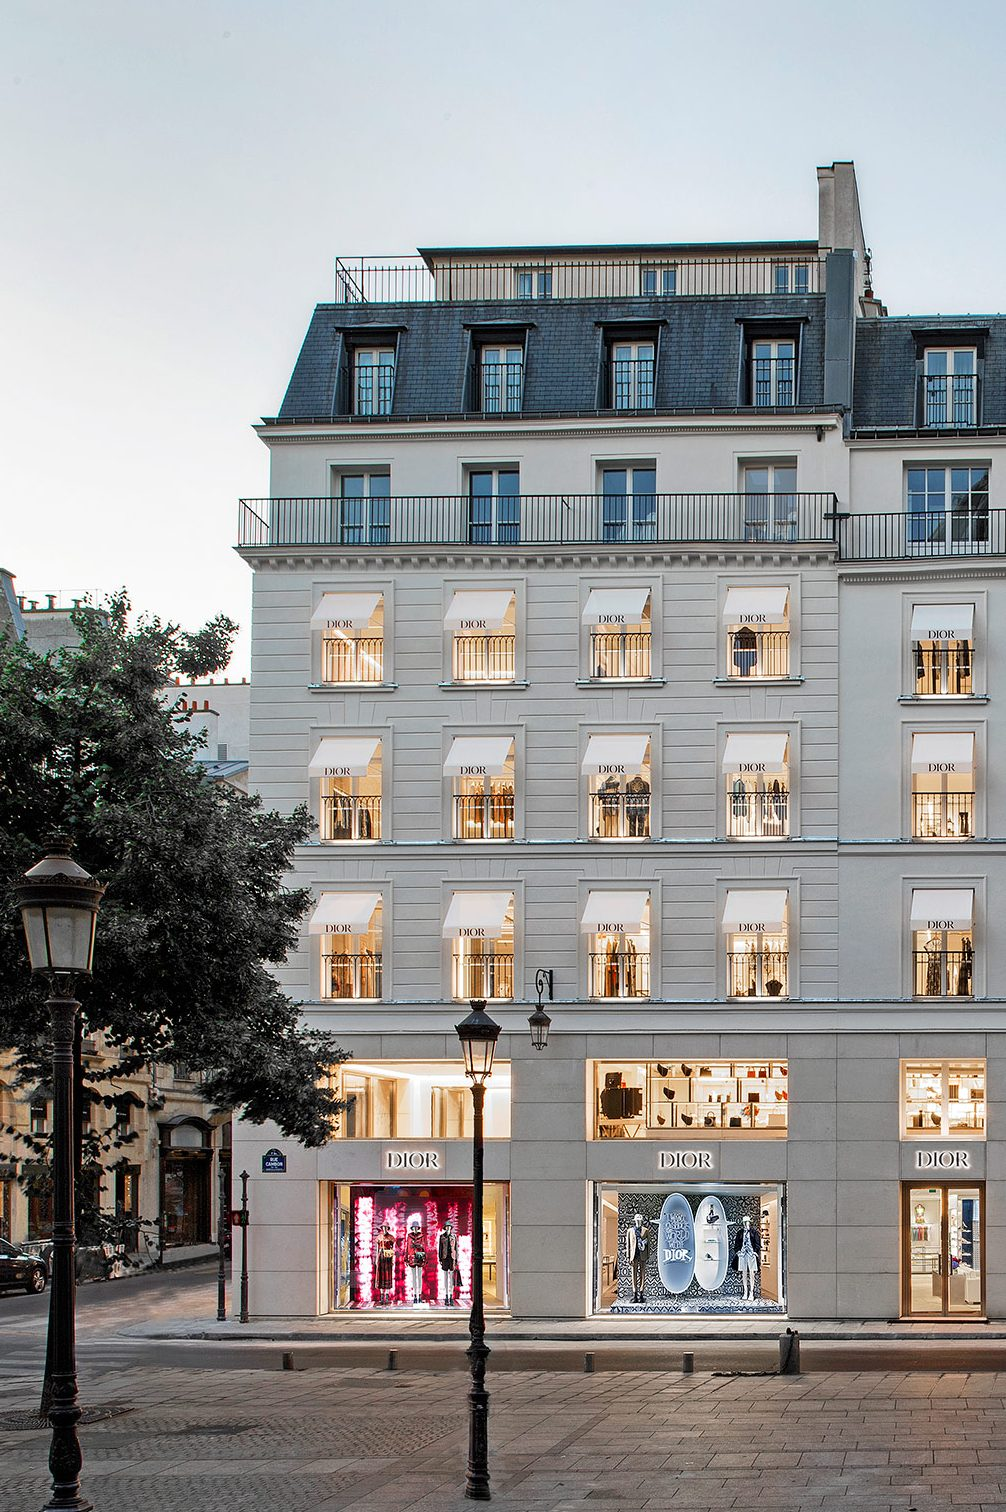 Ready for retail therapy again? Peter Marino's new Dior store in Paris is a beautiful place to start!